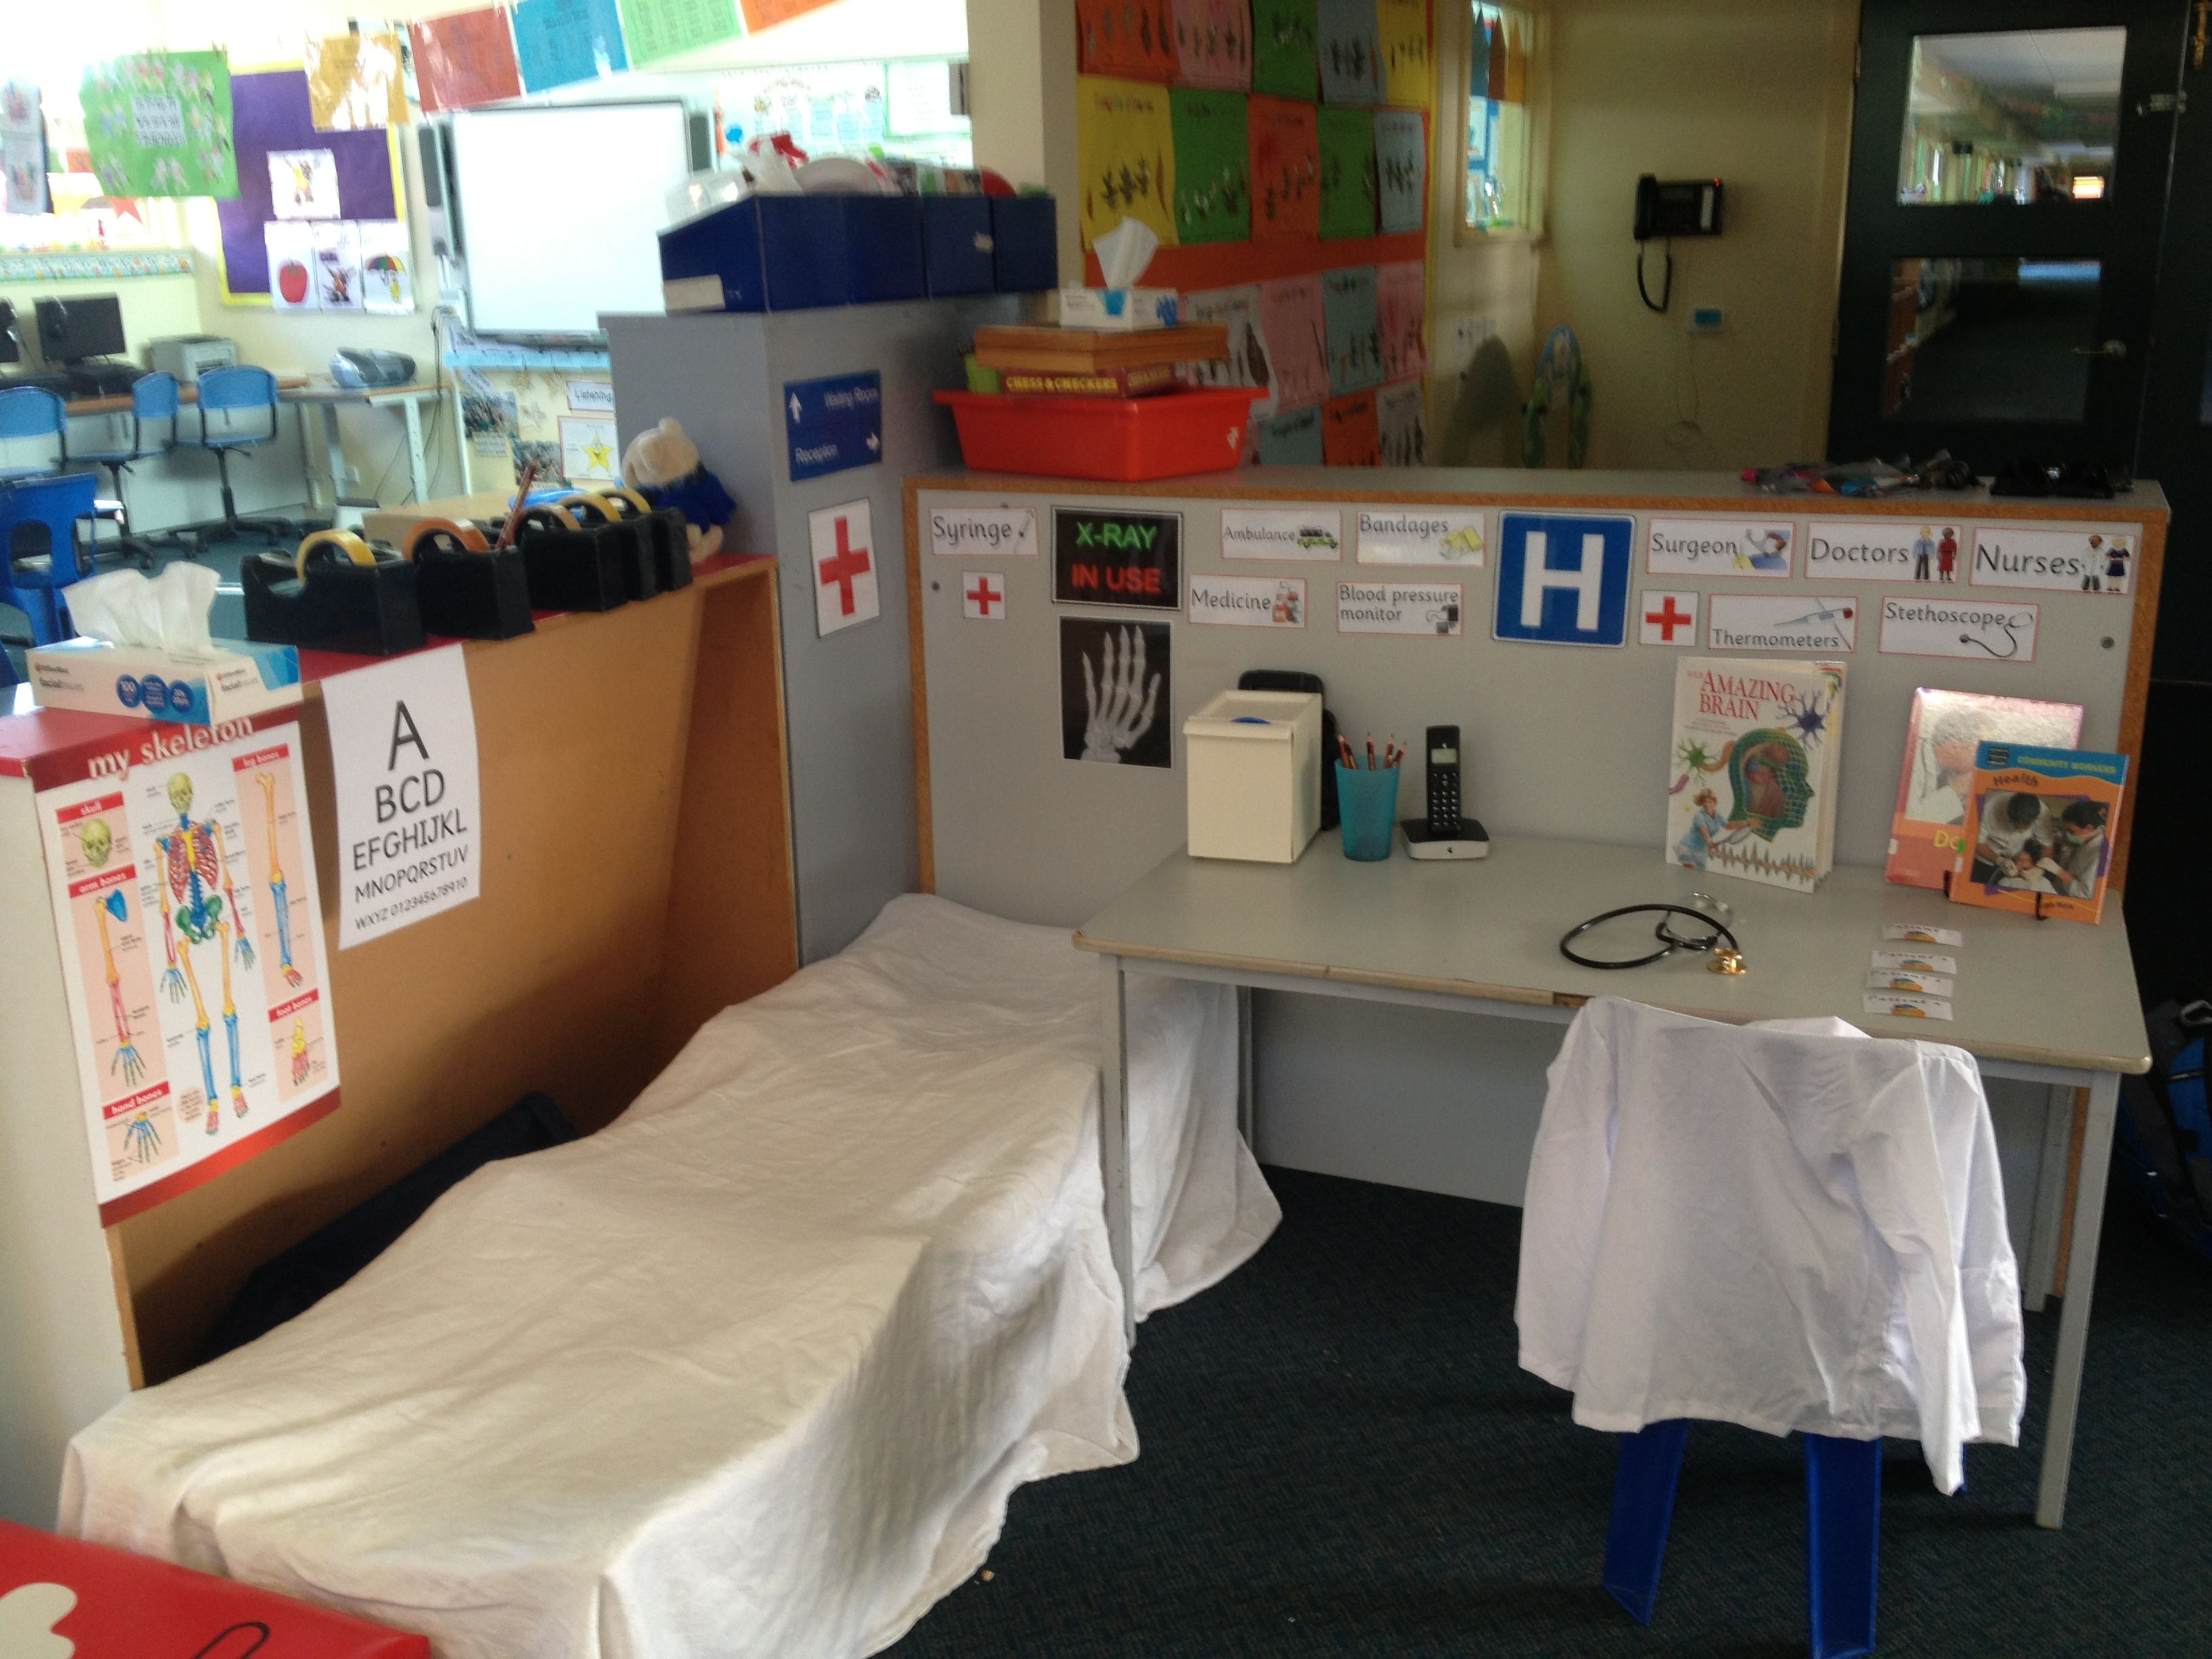 Hospital Role Play Area Play Based Learning